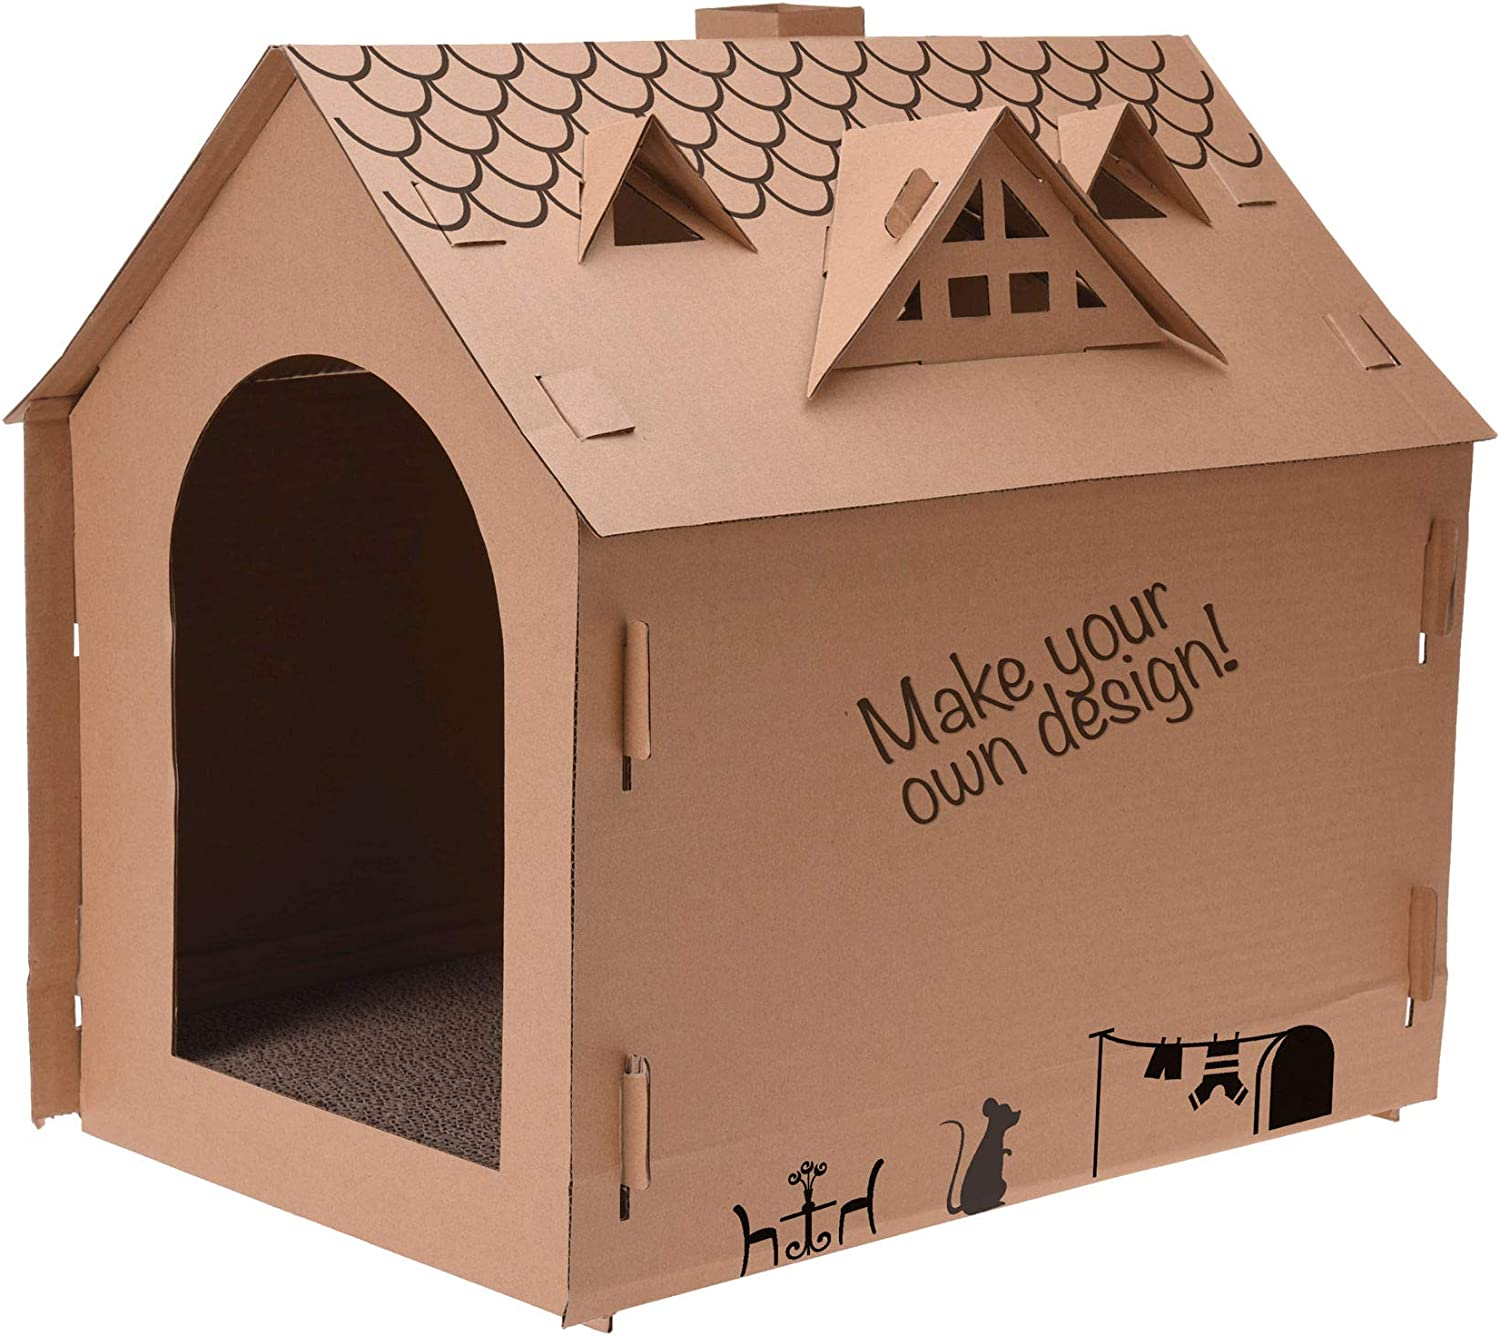 Spetebo Corrugated Cardboard Cat House 48 X 44 X 36 Cm Diy Cat House To Design Yourself Cat Cave Cat House Amazon De Pet Supplies